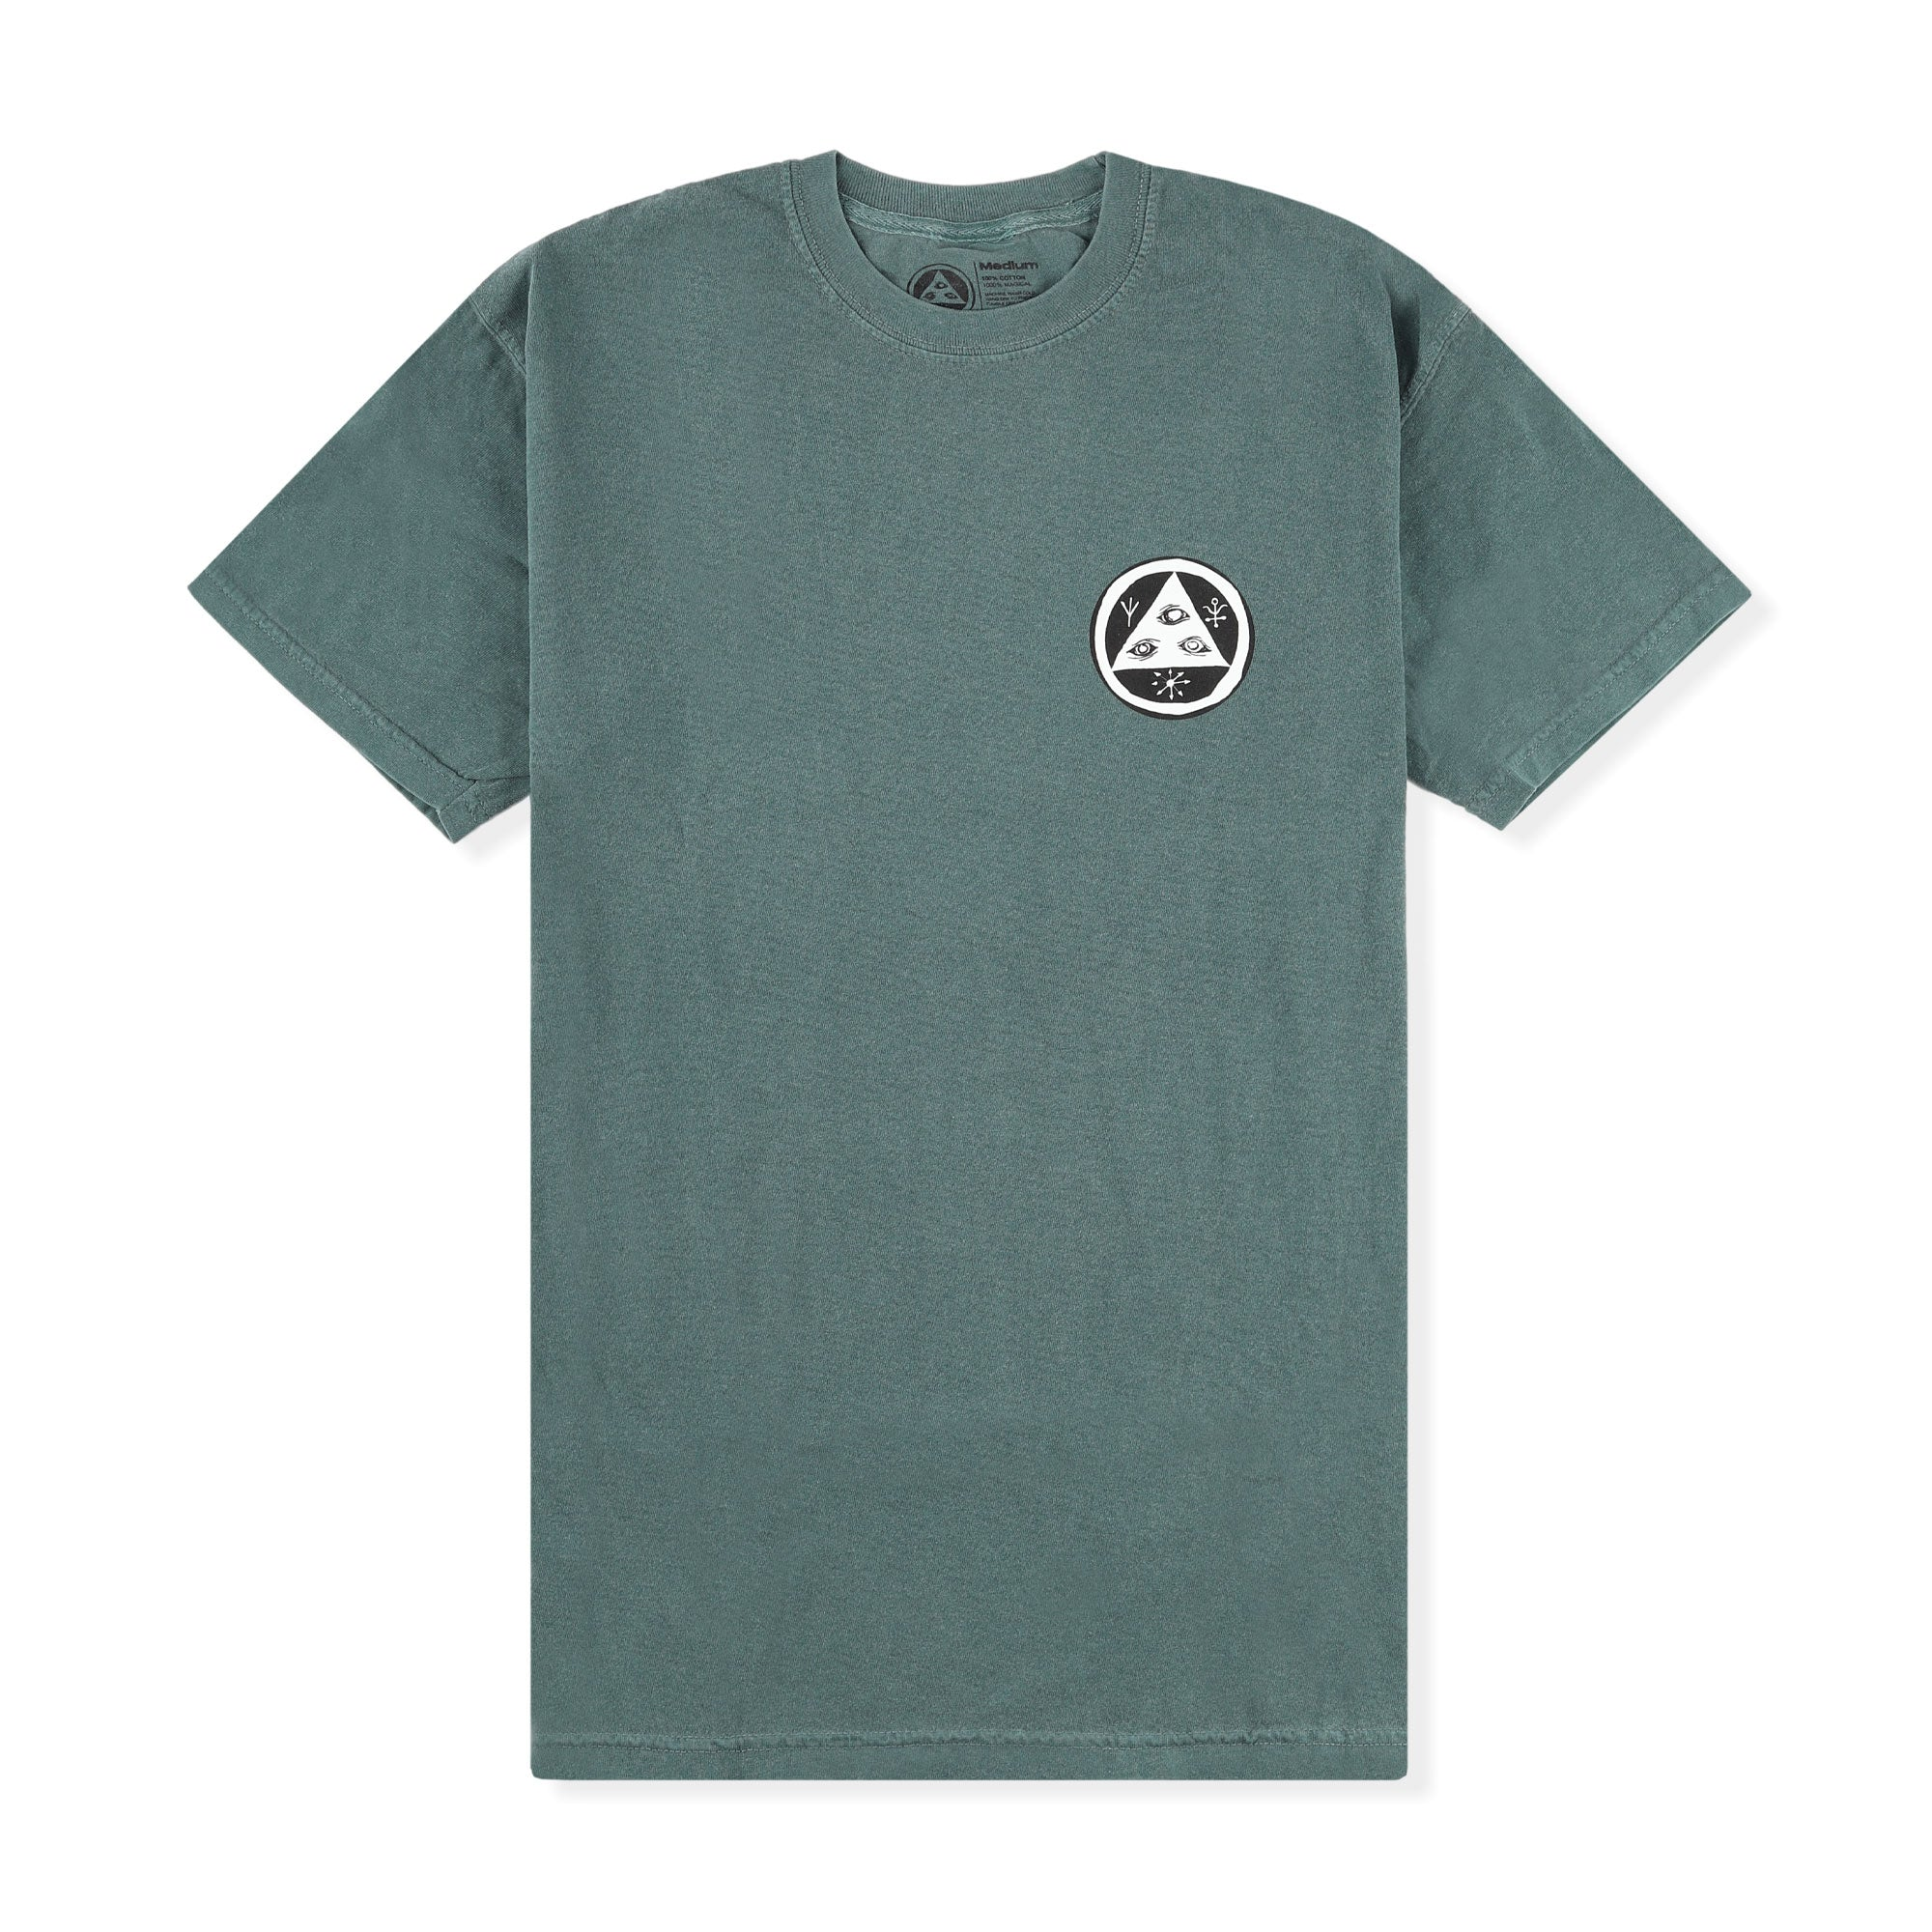 Welcome Sloth Garment-Dyed Tee Product Photo #1